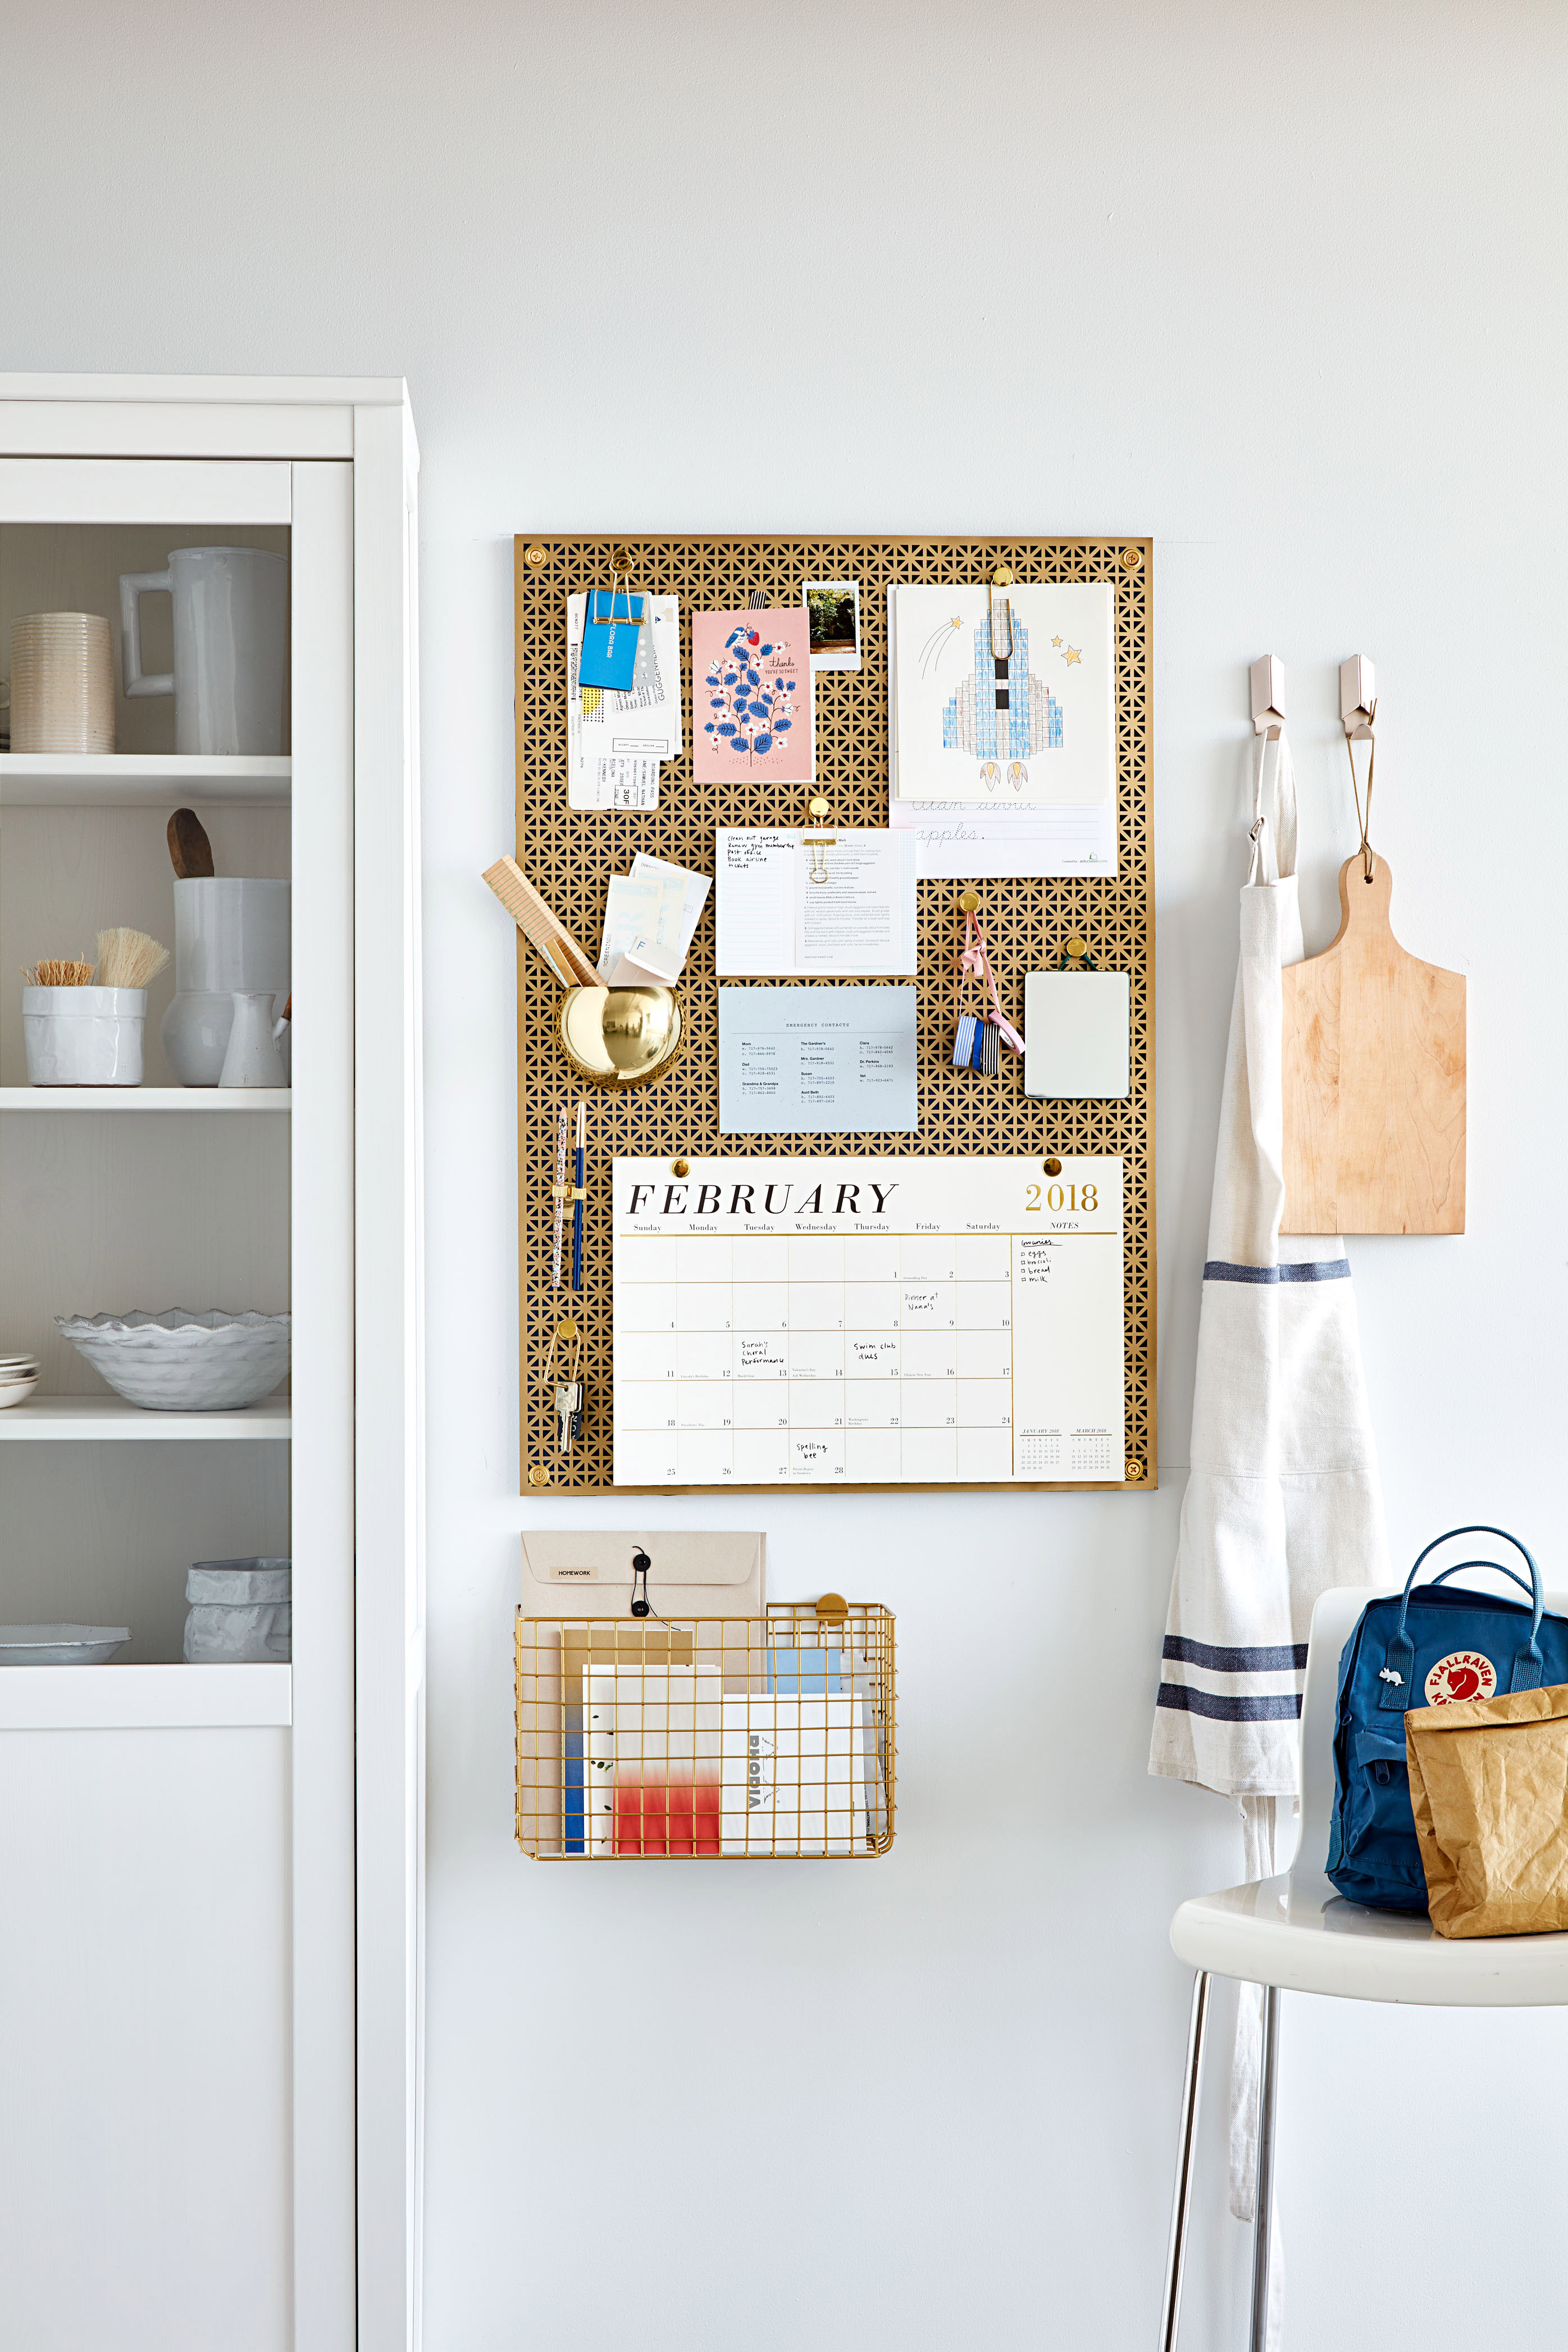 Radiator-Screen Organizer